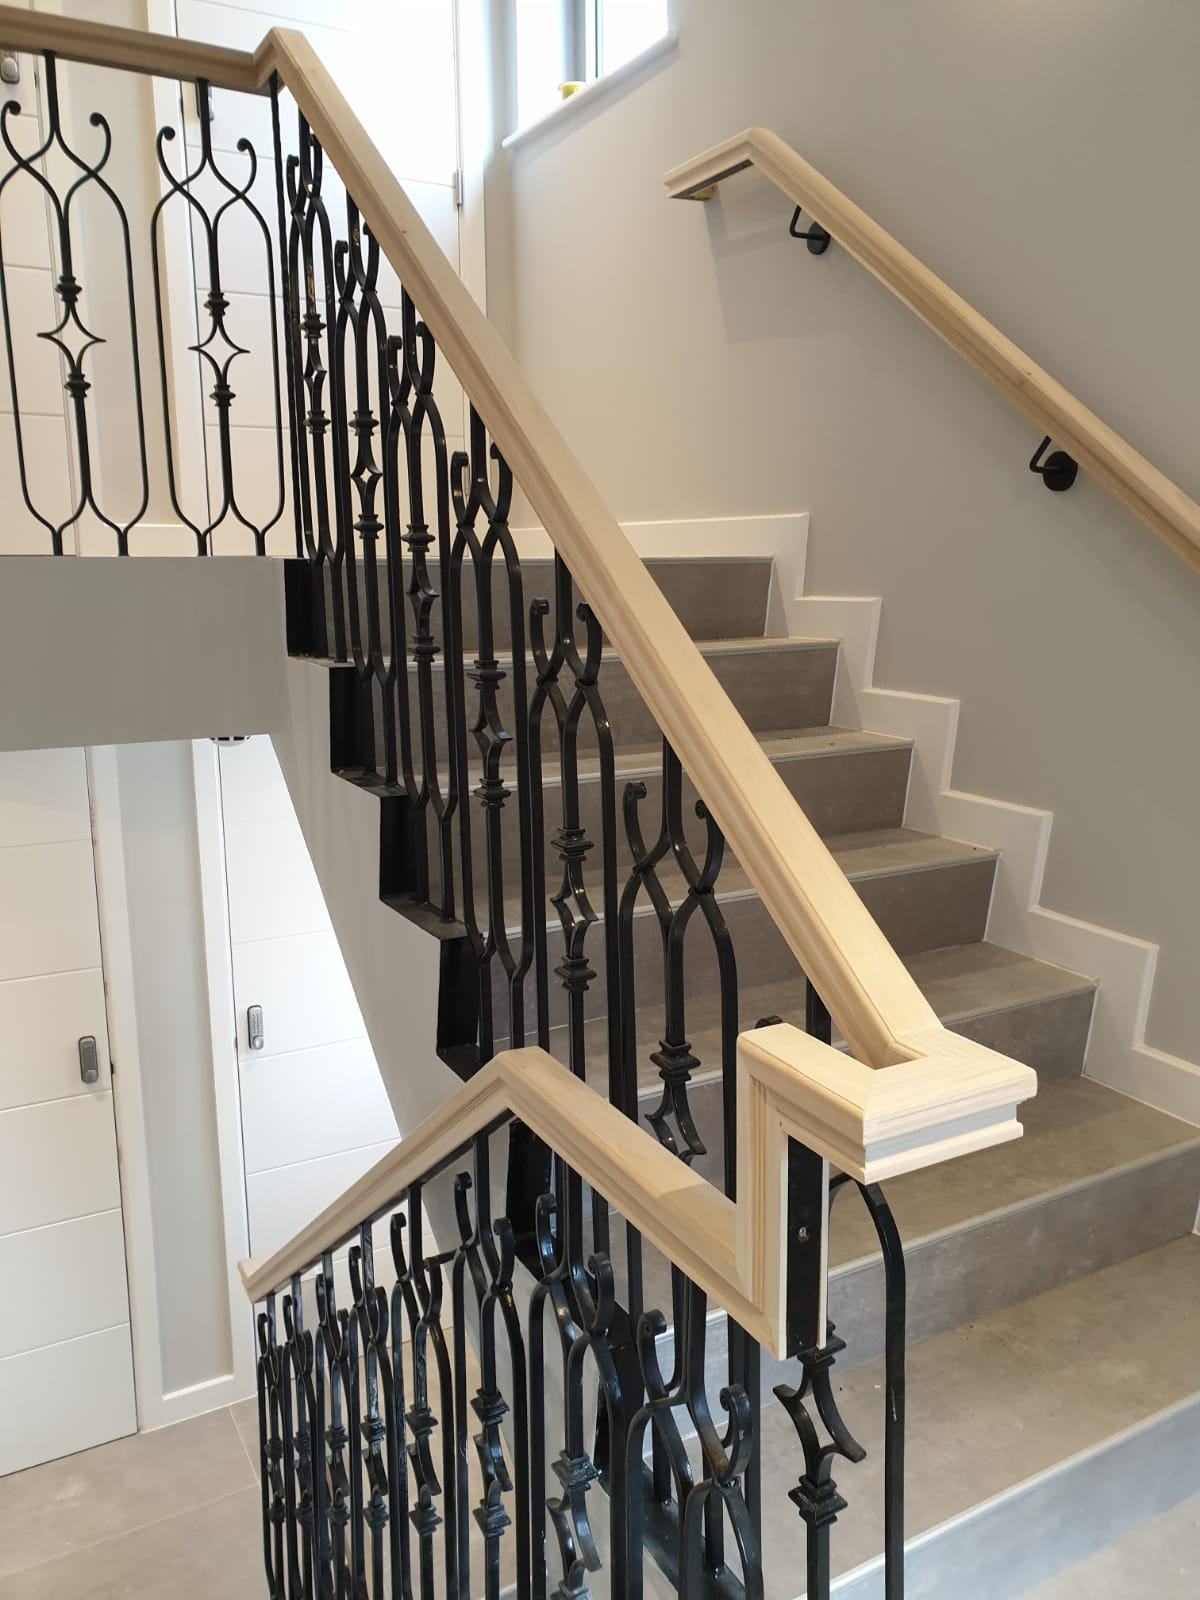 Elegant wooden handrail with metal railings